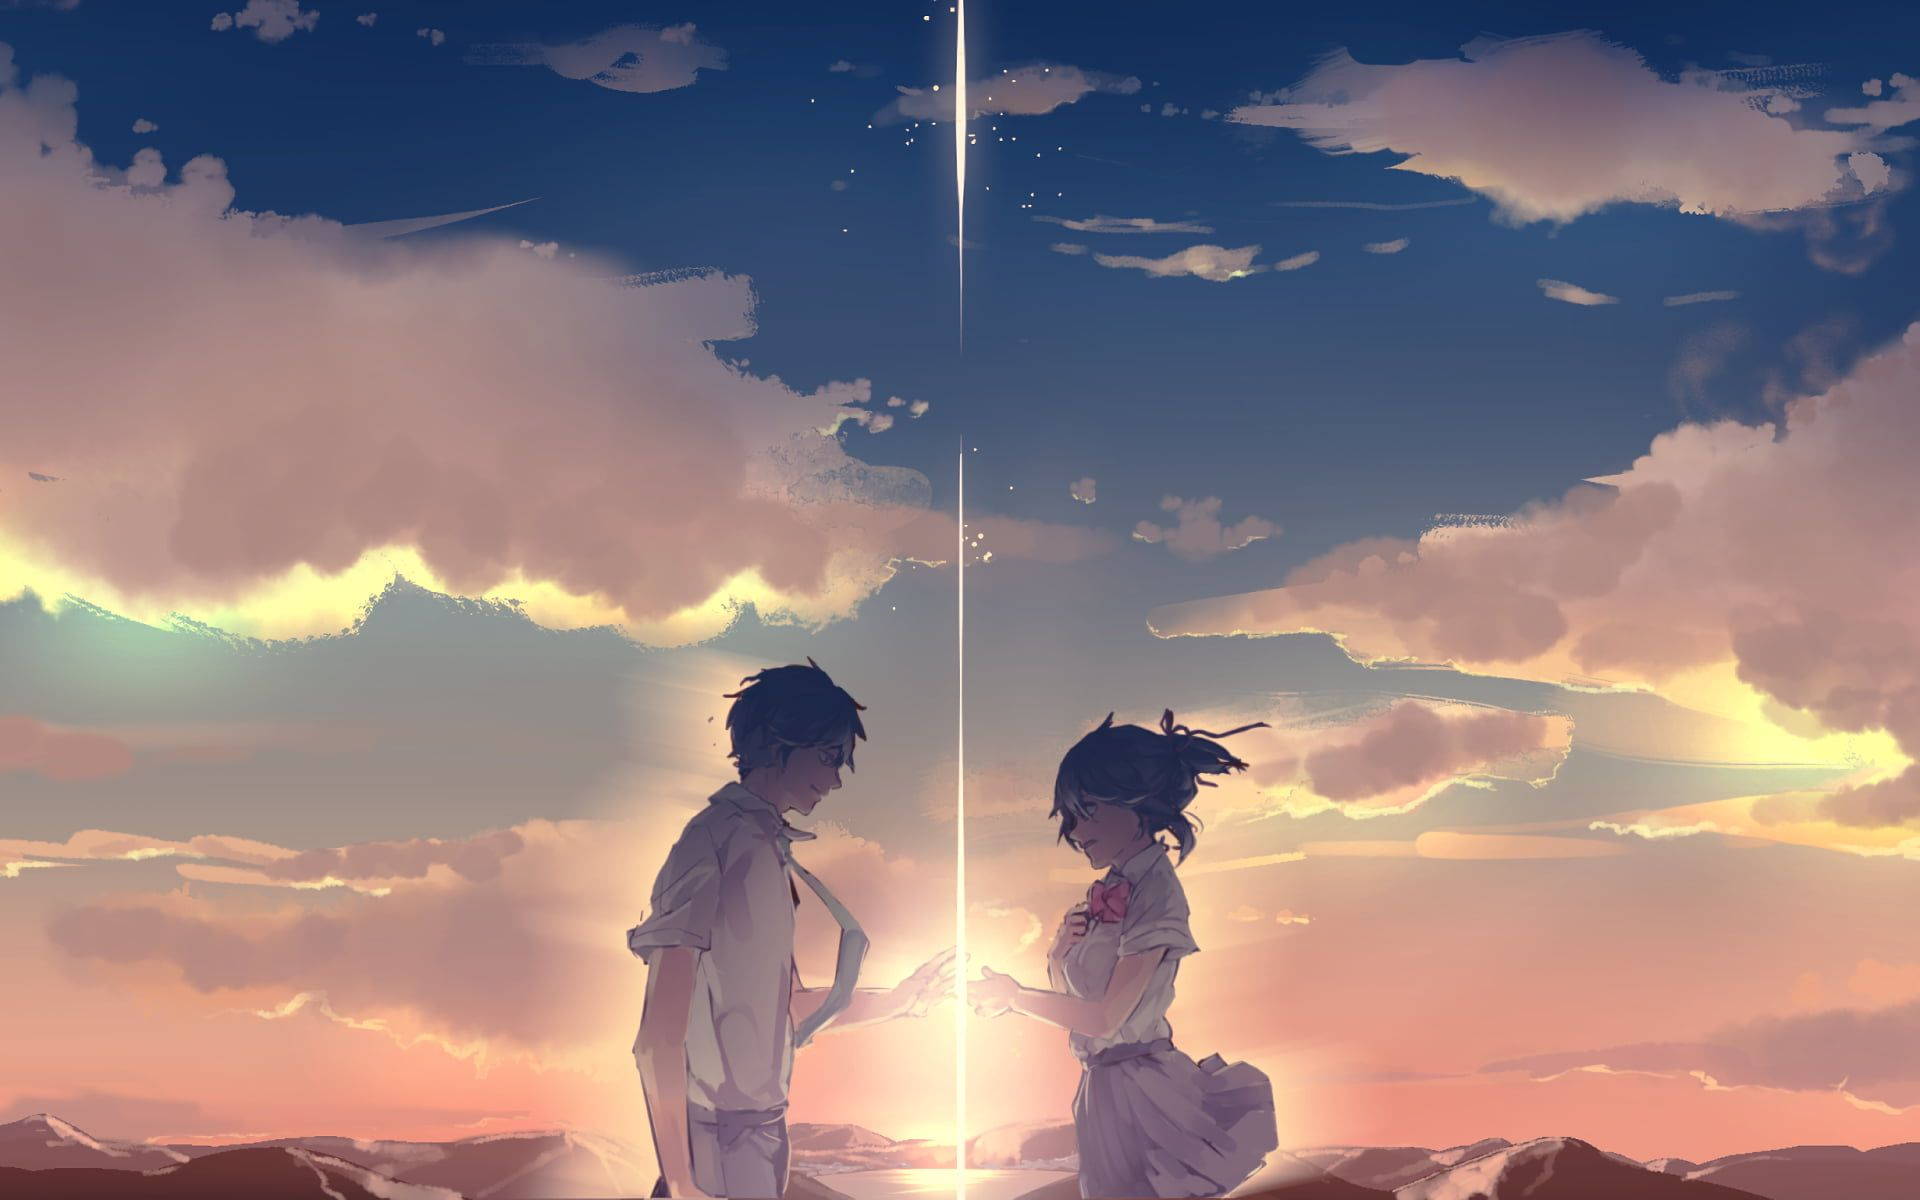 Pin By Cloudyview On Ignate In 2020 Your Name Wallpaper Name Wallpaper Kimi No Na Wa